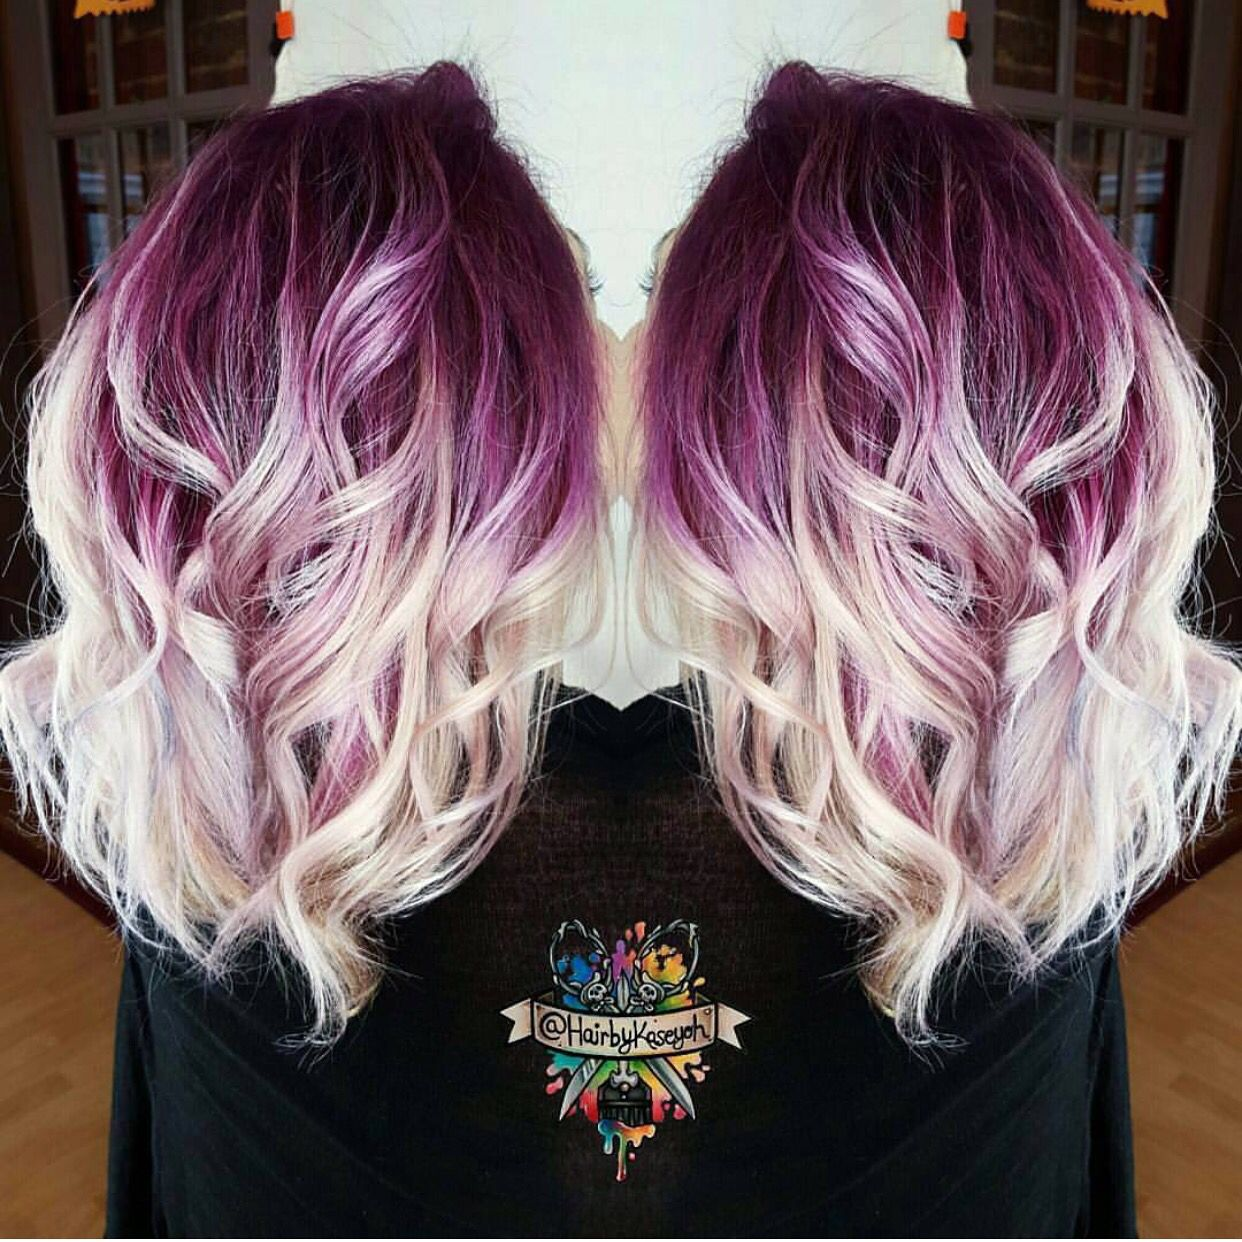 plum purple hair color base with billowy white blonde hair